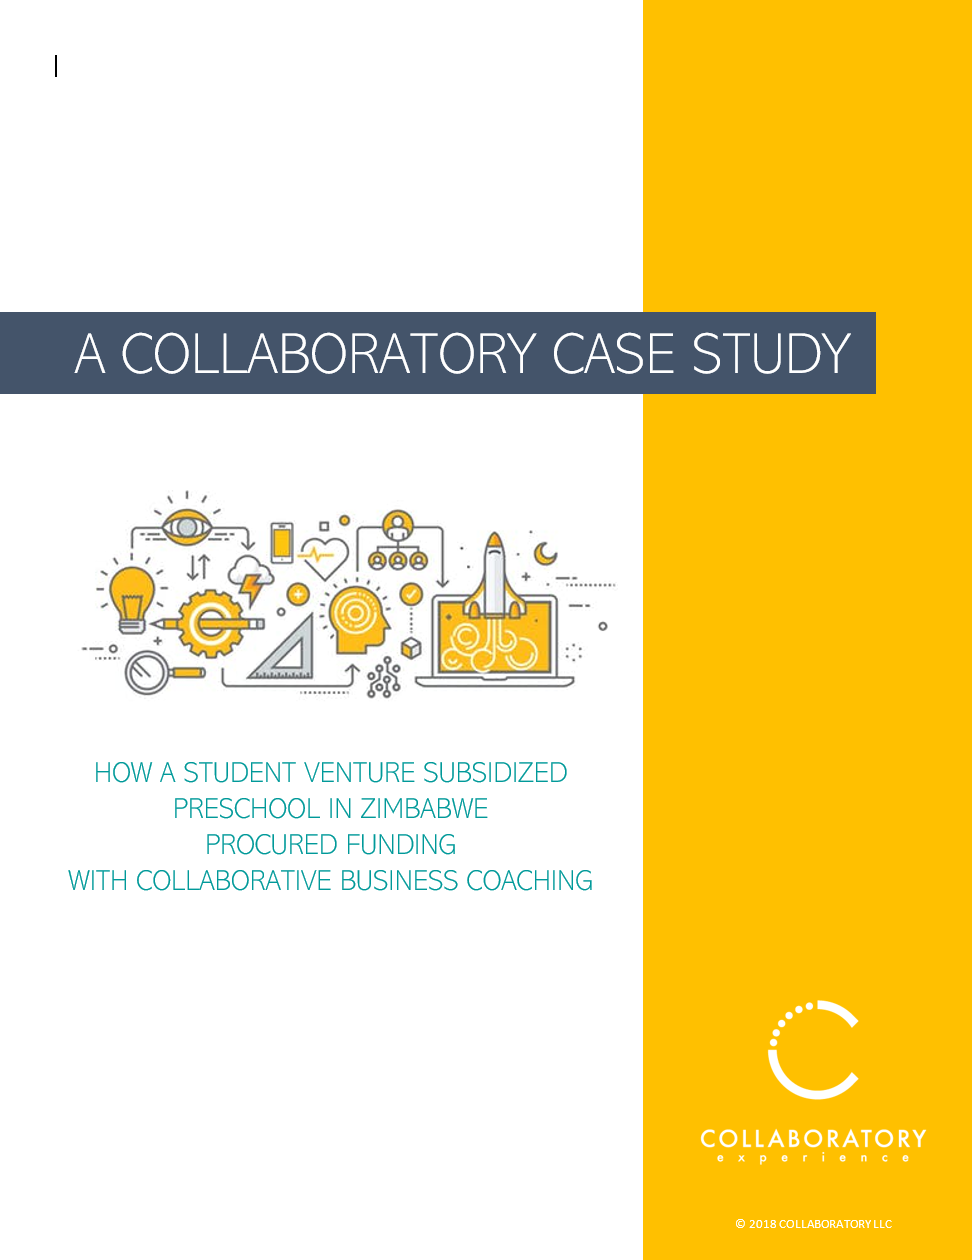 click image to read this case study